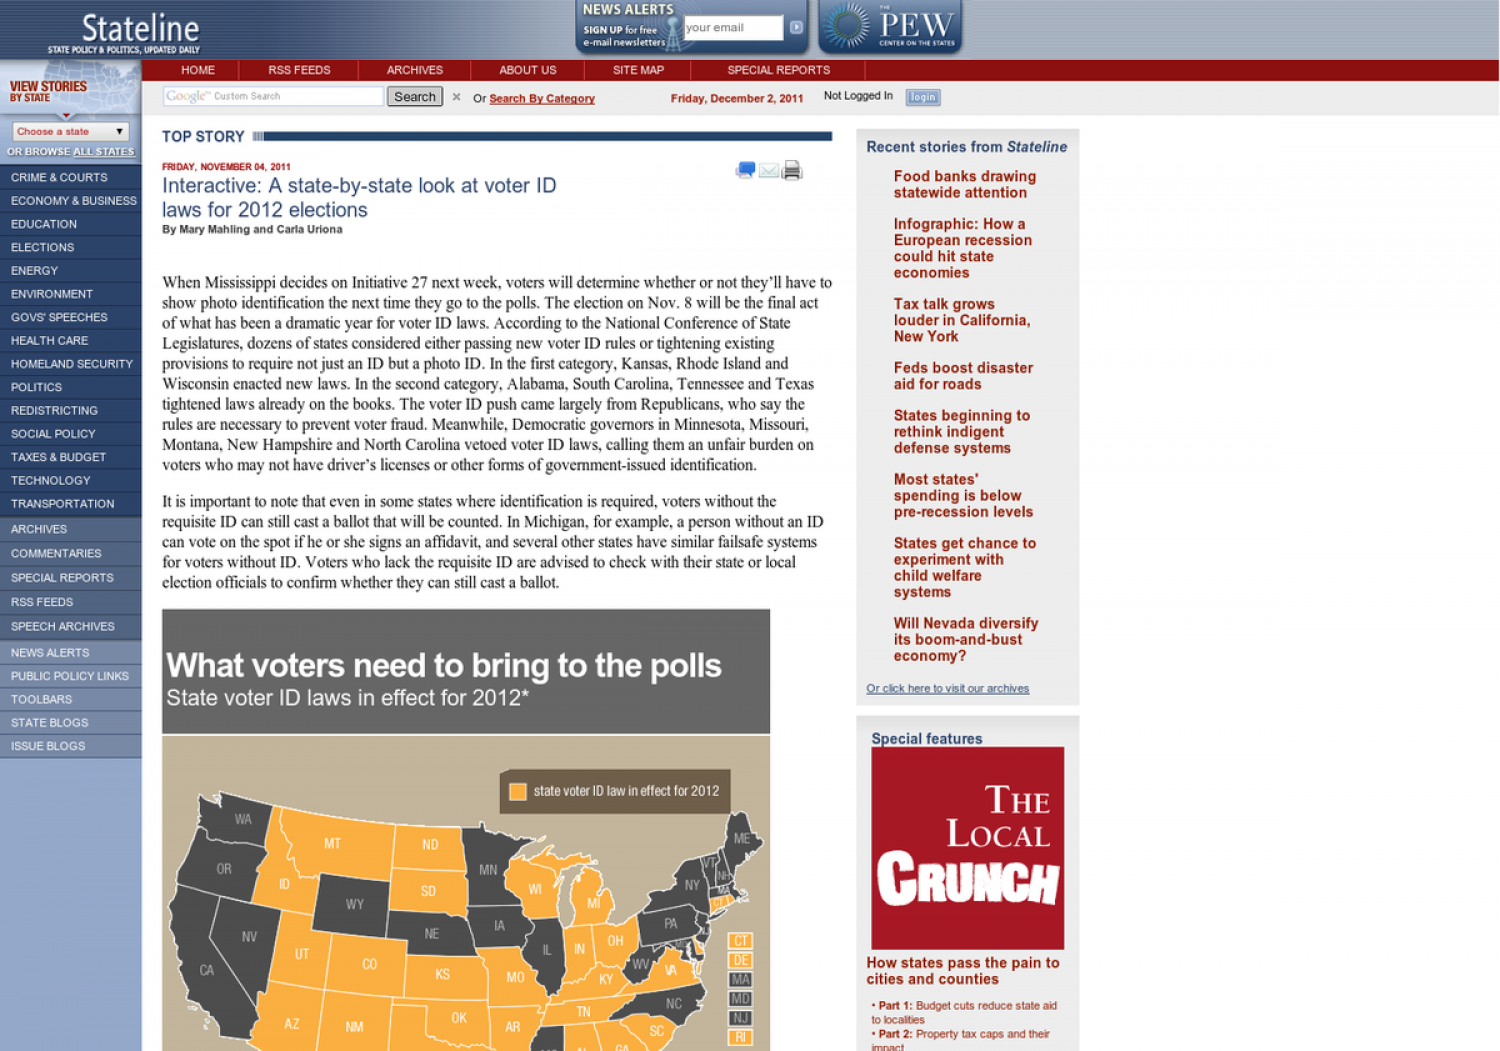 A state-by-state look at voter ID laws for 2012 elections Infographic